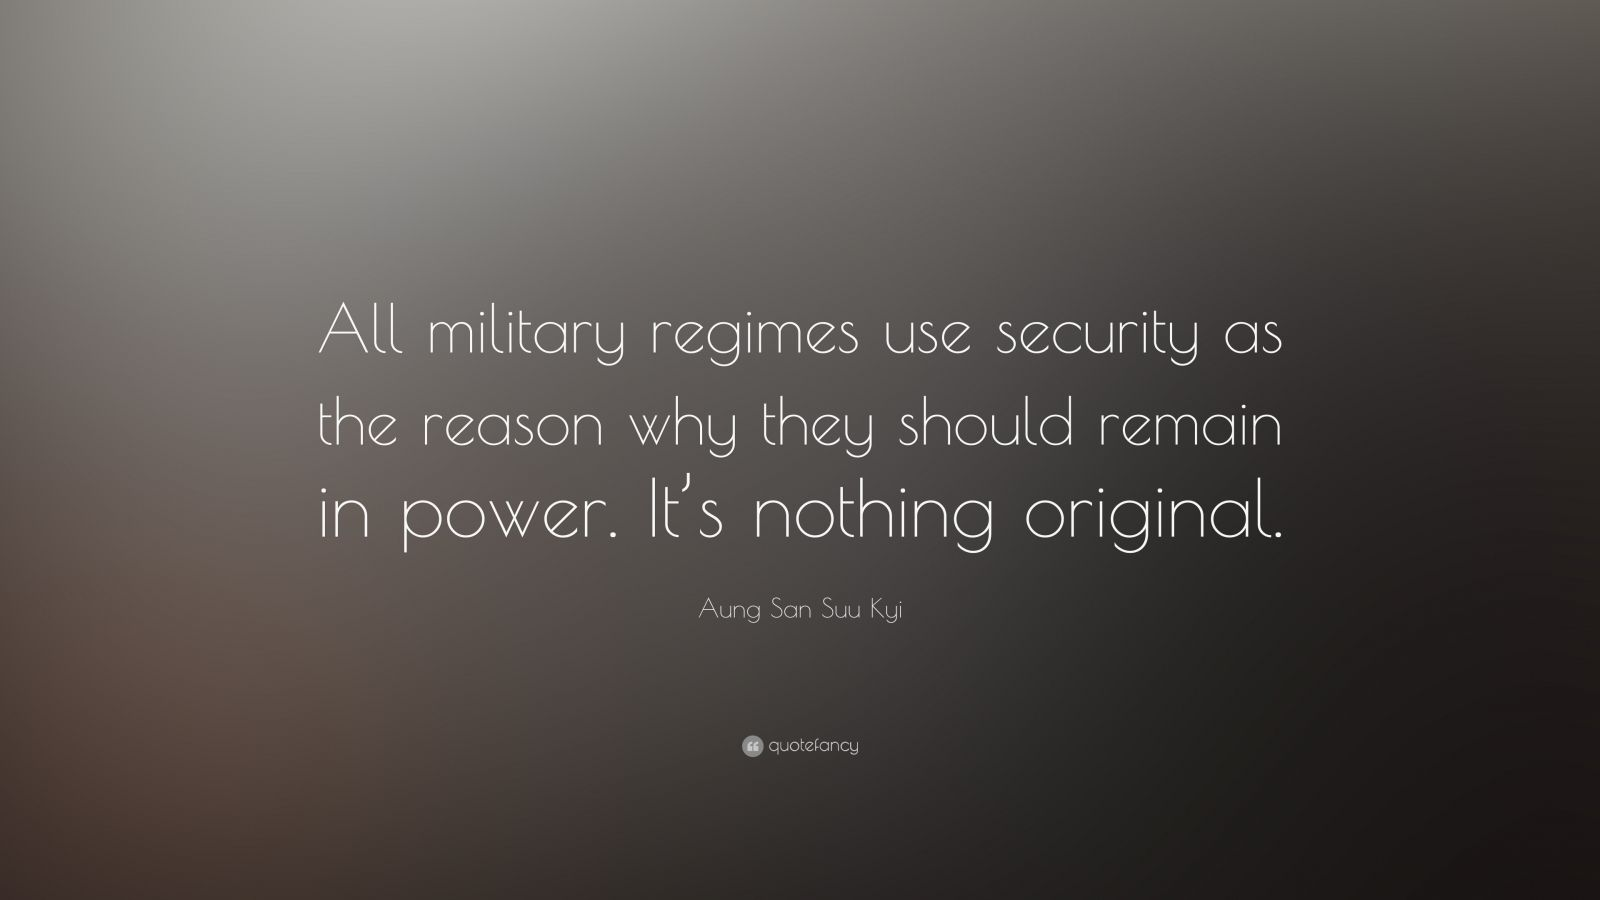 """Aung San Suu Kyi Quote: """"All military regimes use security as the reason why they should remain in power. It's nothing original."""""""